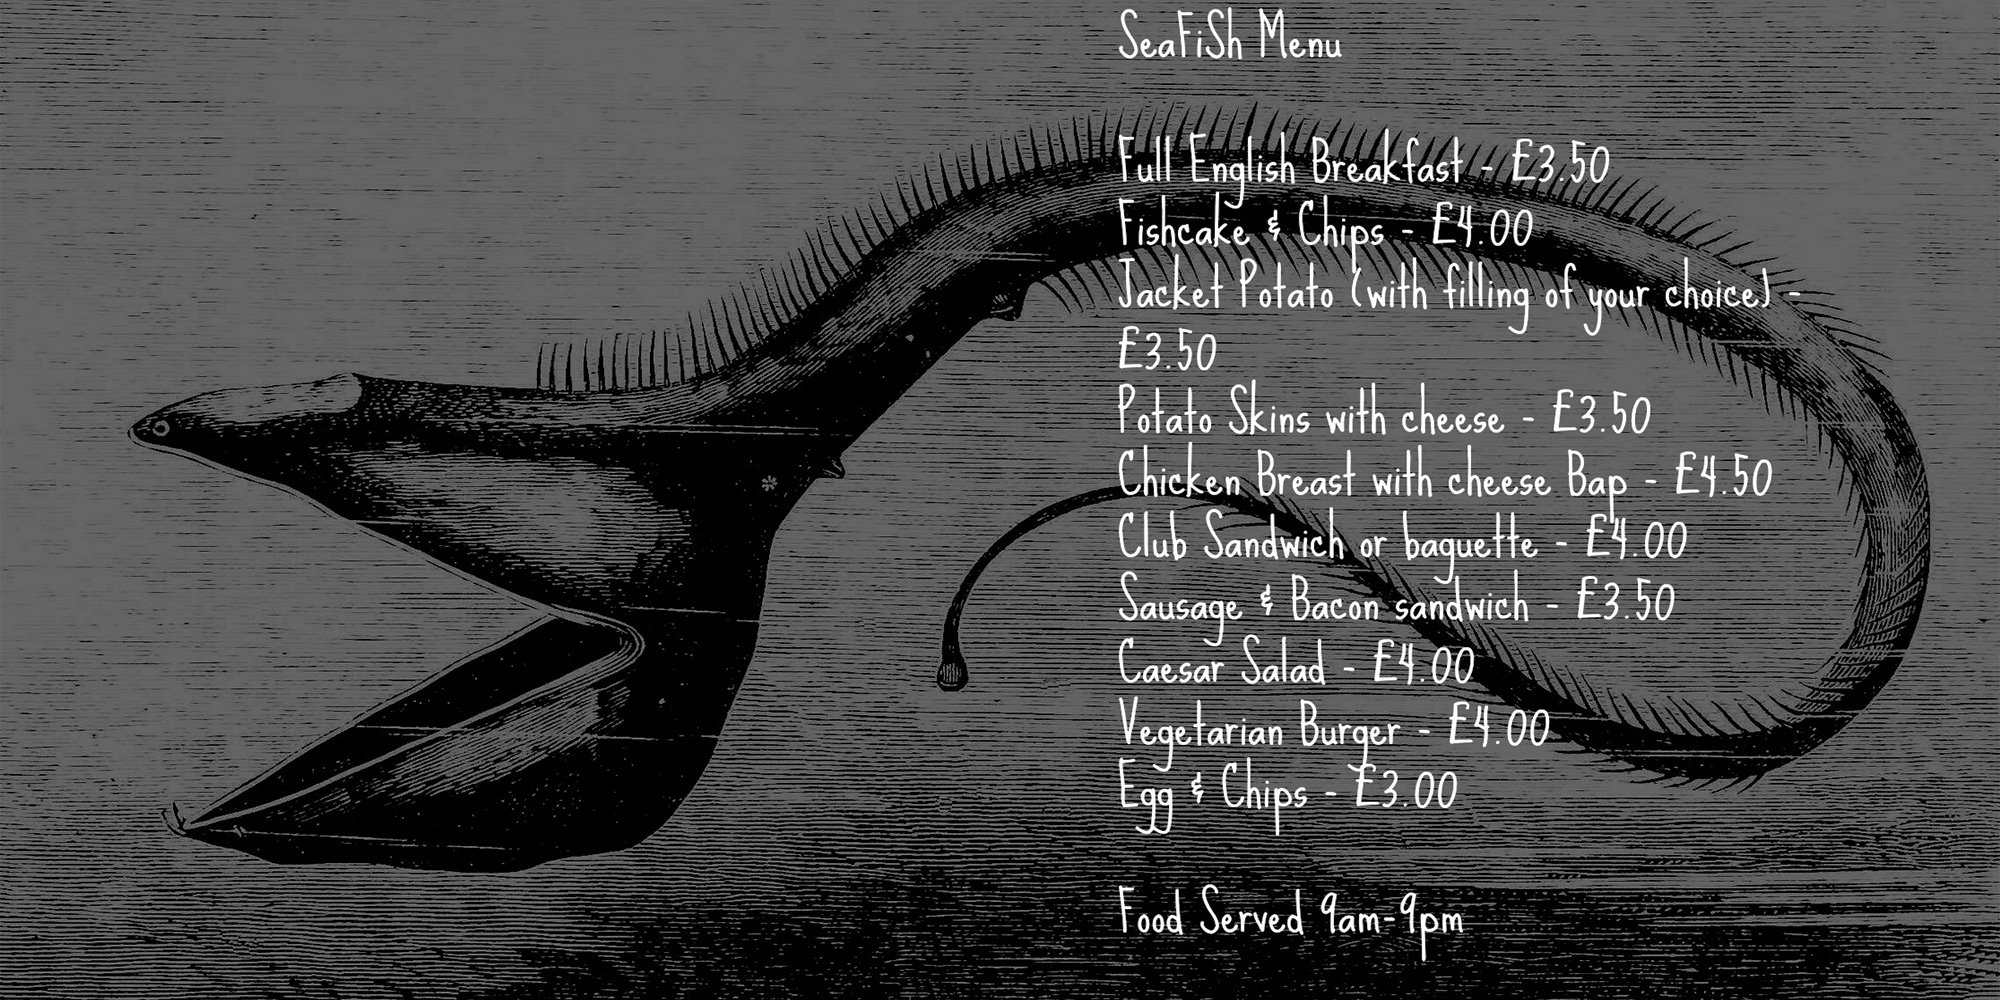 SeaFiSh Cafe Bar Venue food menu